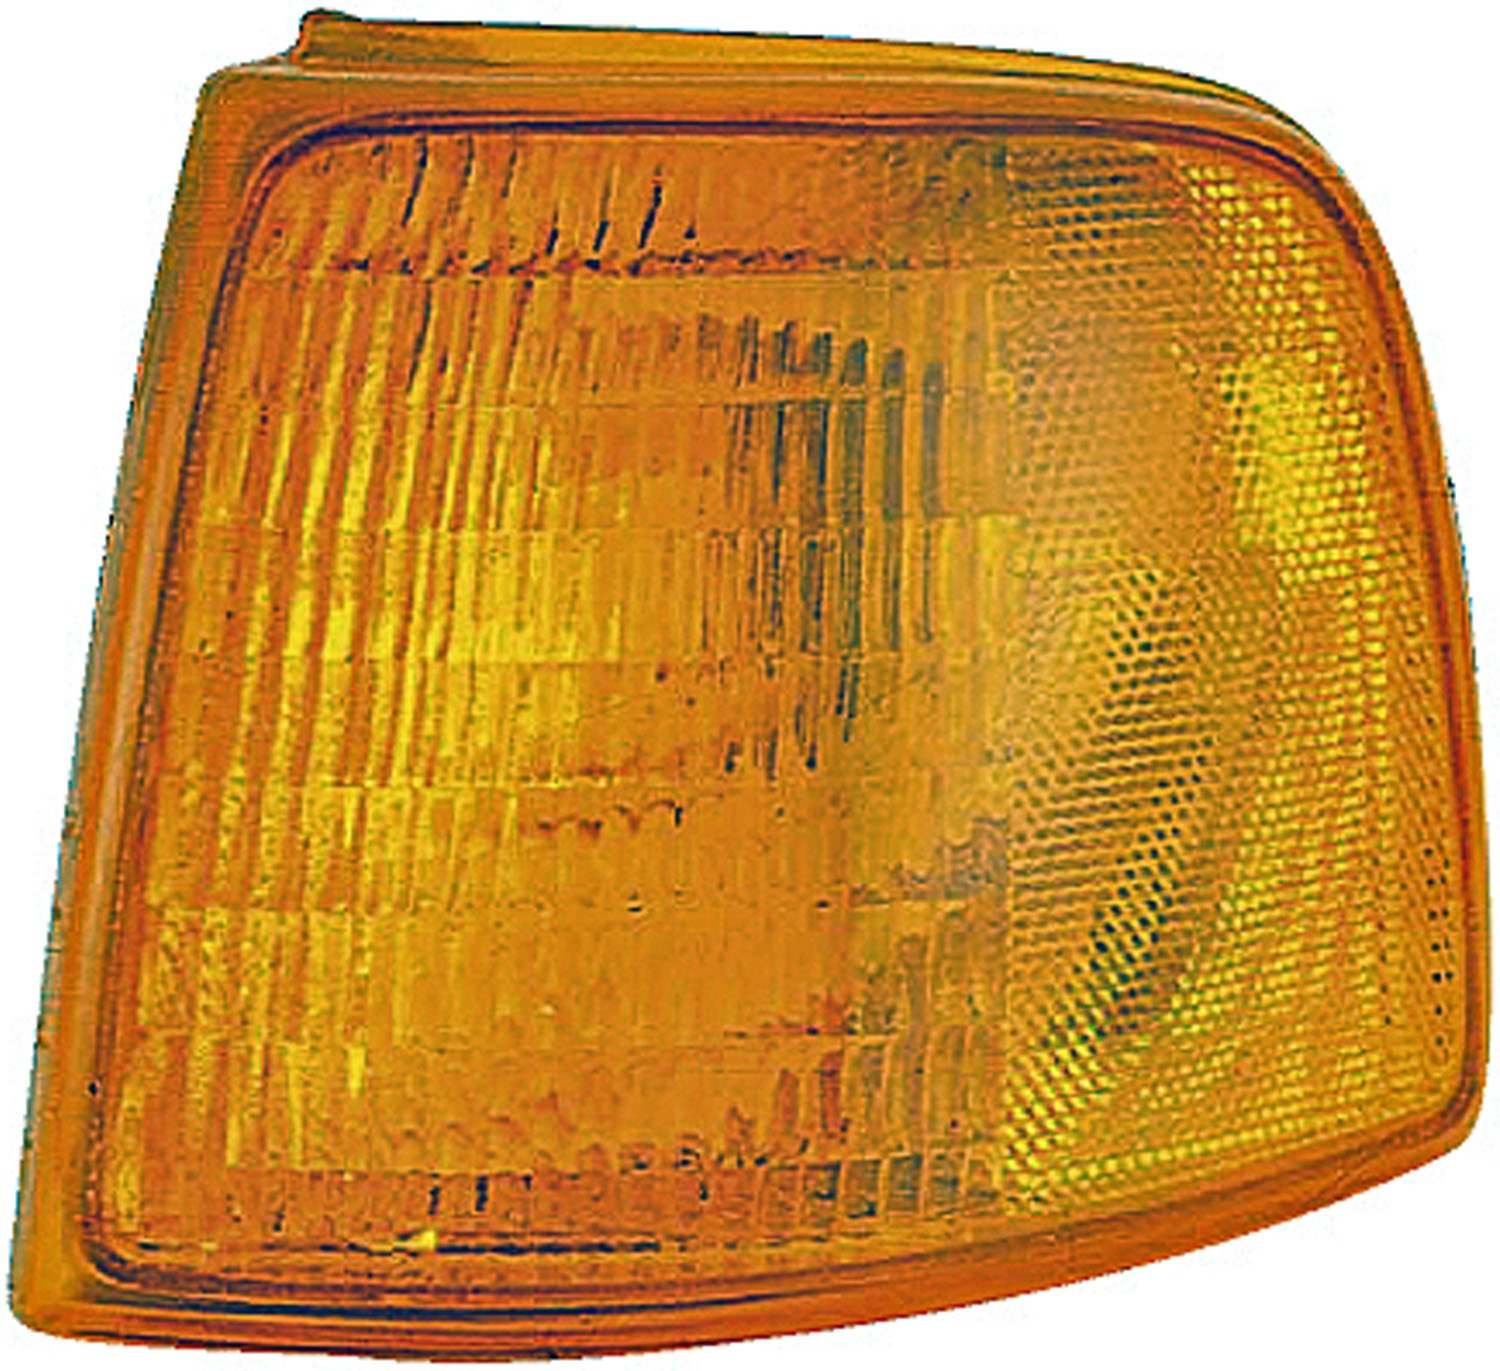 Dorman 1630218 Ford Ranger Front Driver Side Parking/Turn Signal Light Assembly